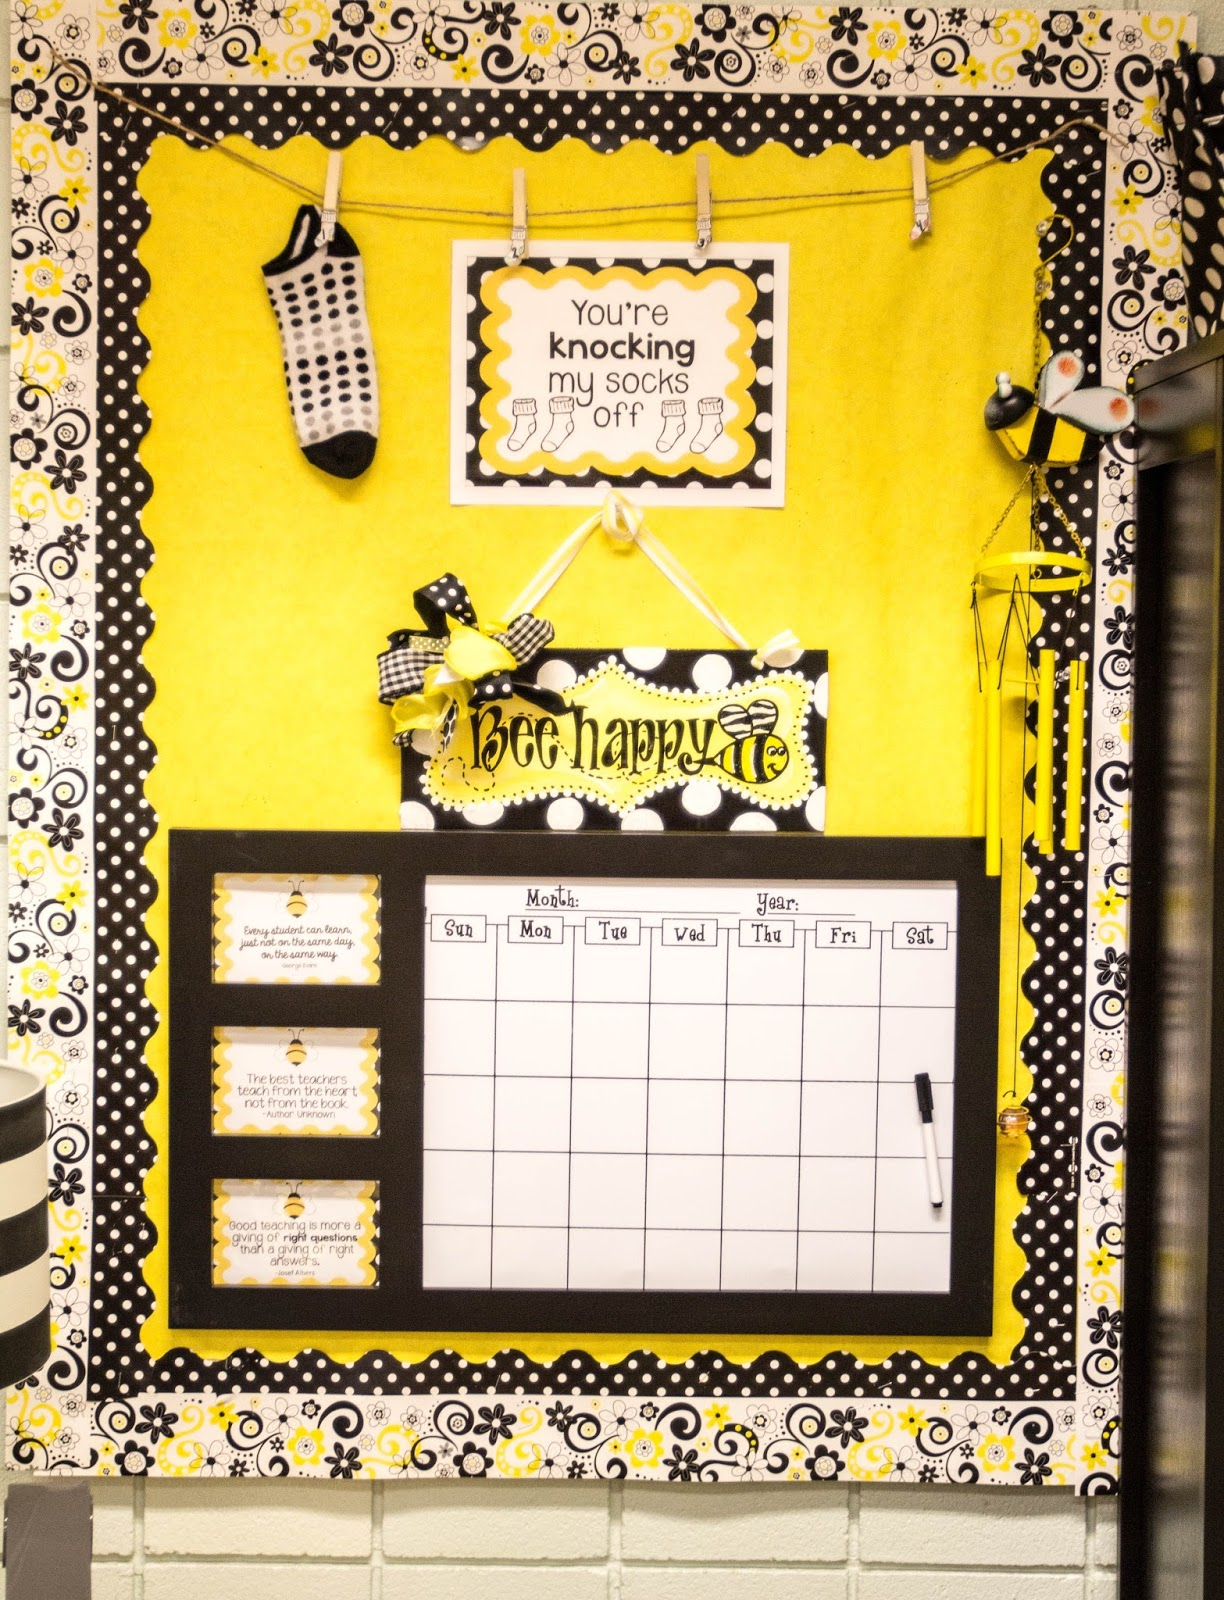 Yellow Classroom Decor ~ Run miss nelson s got the camera monday made it braggin